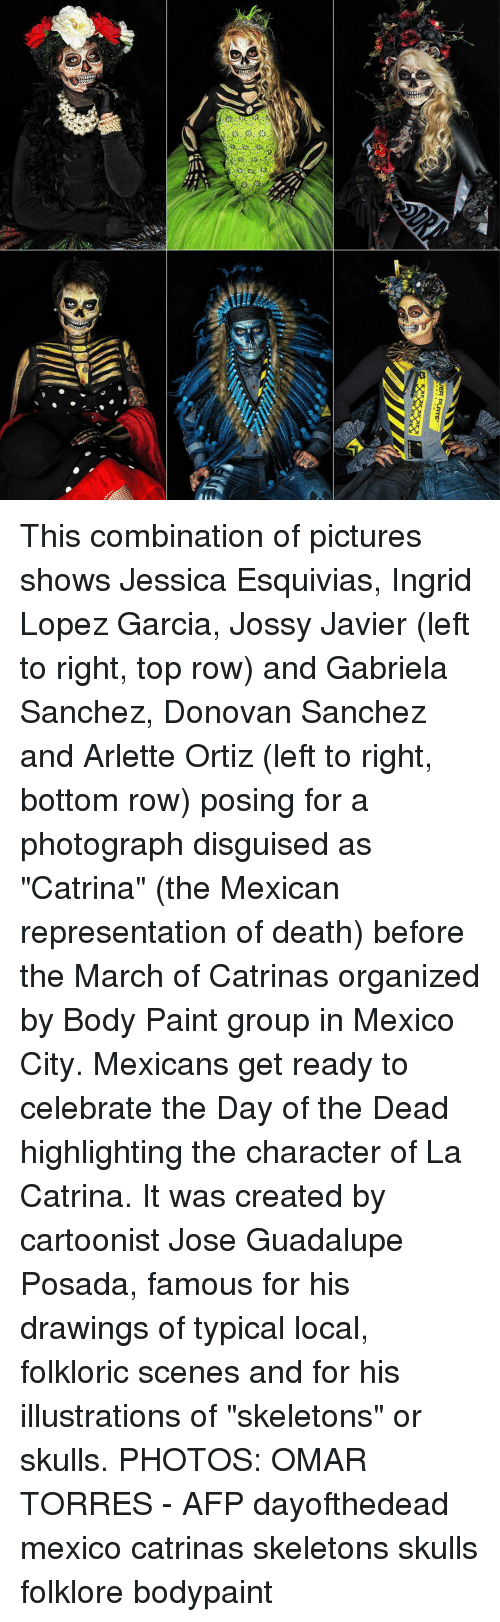 "donovan: This combination of pictures shows Jessica Esquivias, Ingrid Lopez Garcia, Jossy Javier (left to right, top row) and Gabriela Sanchez, Donovan Sanchez and Arlette Ortiz (left to right, bottom row) posing for a photograph disguised as ""Catrina"" (the Mexican representation of death) before the March of Catrinas organized by Body Paint group in Mexico City. Mexicans get ready to celebrate the Day of the Dead highlighting the character of La Catrina. It was created by cartoonist Jose Guadalupe Posada, famous for his drawings of typical local, folkloric scenes and for his illustrations of ""skeletons"" or skulls. PHOTOS: OMAR TORRES - AFP dayofthedead mexico catrinas skeletons skulls folklore bodypaint"